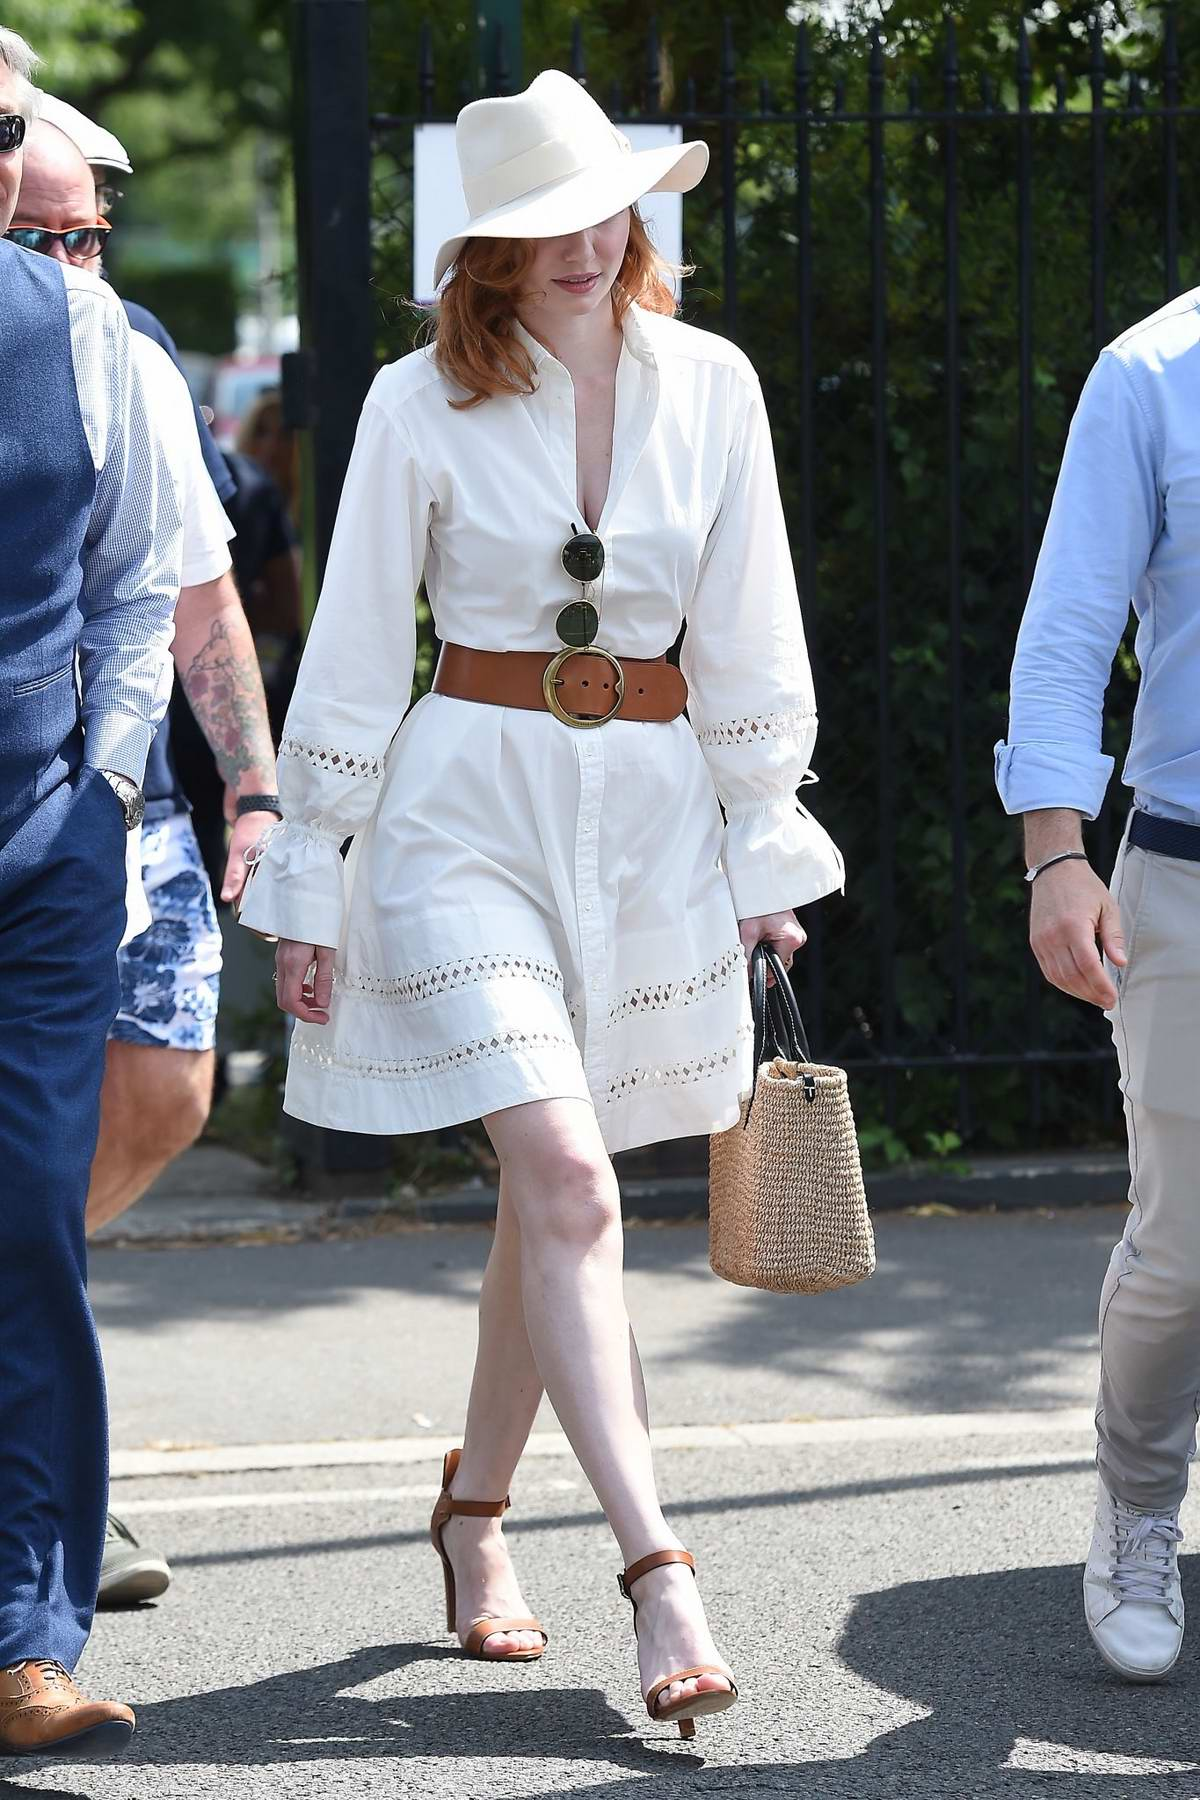 Eleanor Tomlinson attends the 2019 Wimbledon Tennis Championships in London, UK